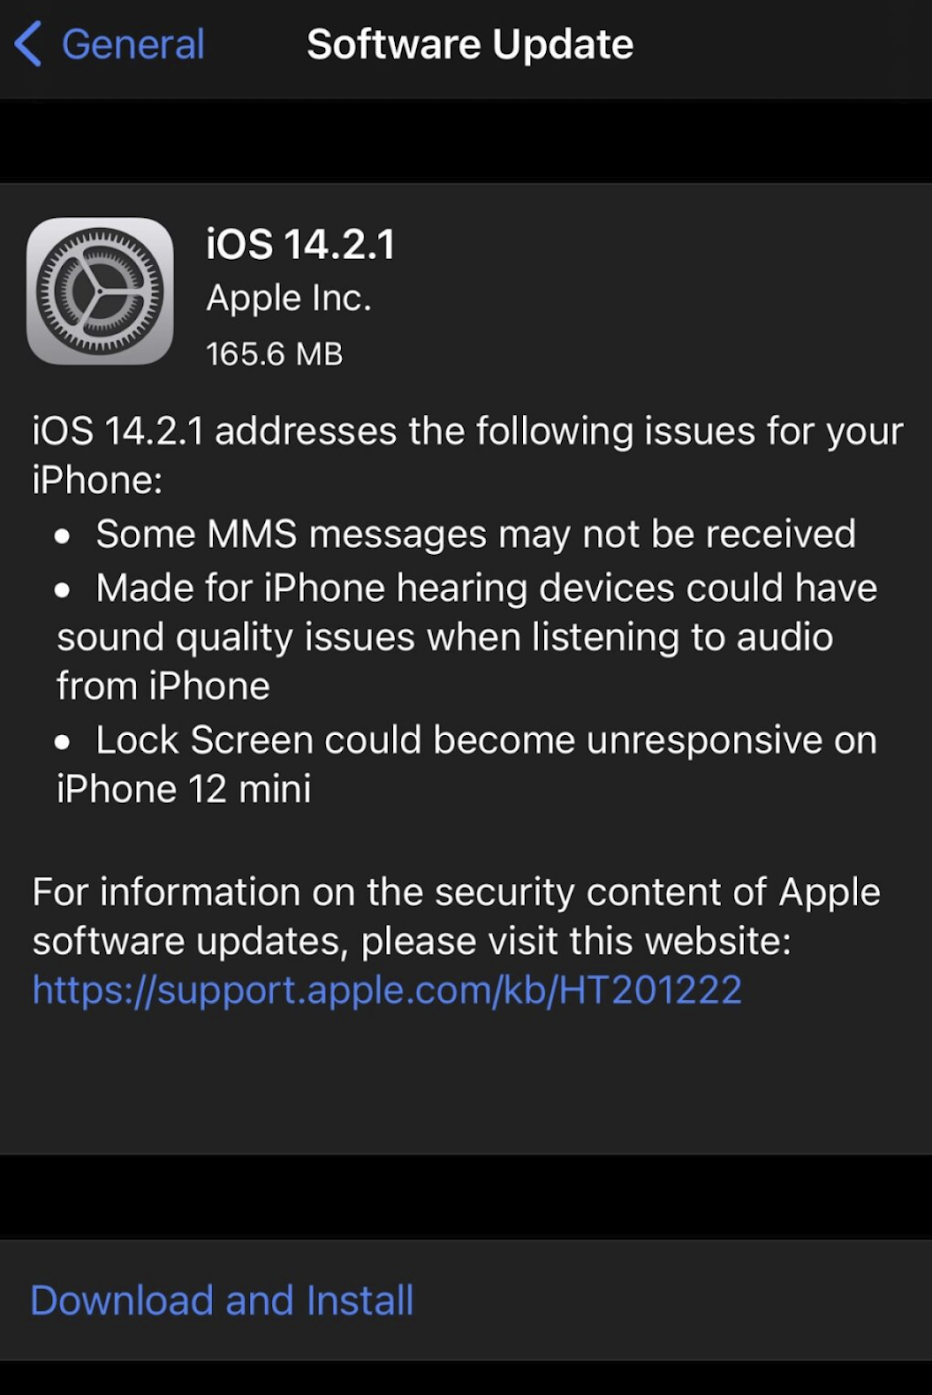 Download and Install the latest software update for iPhone/iPad